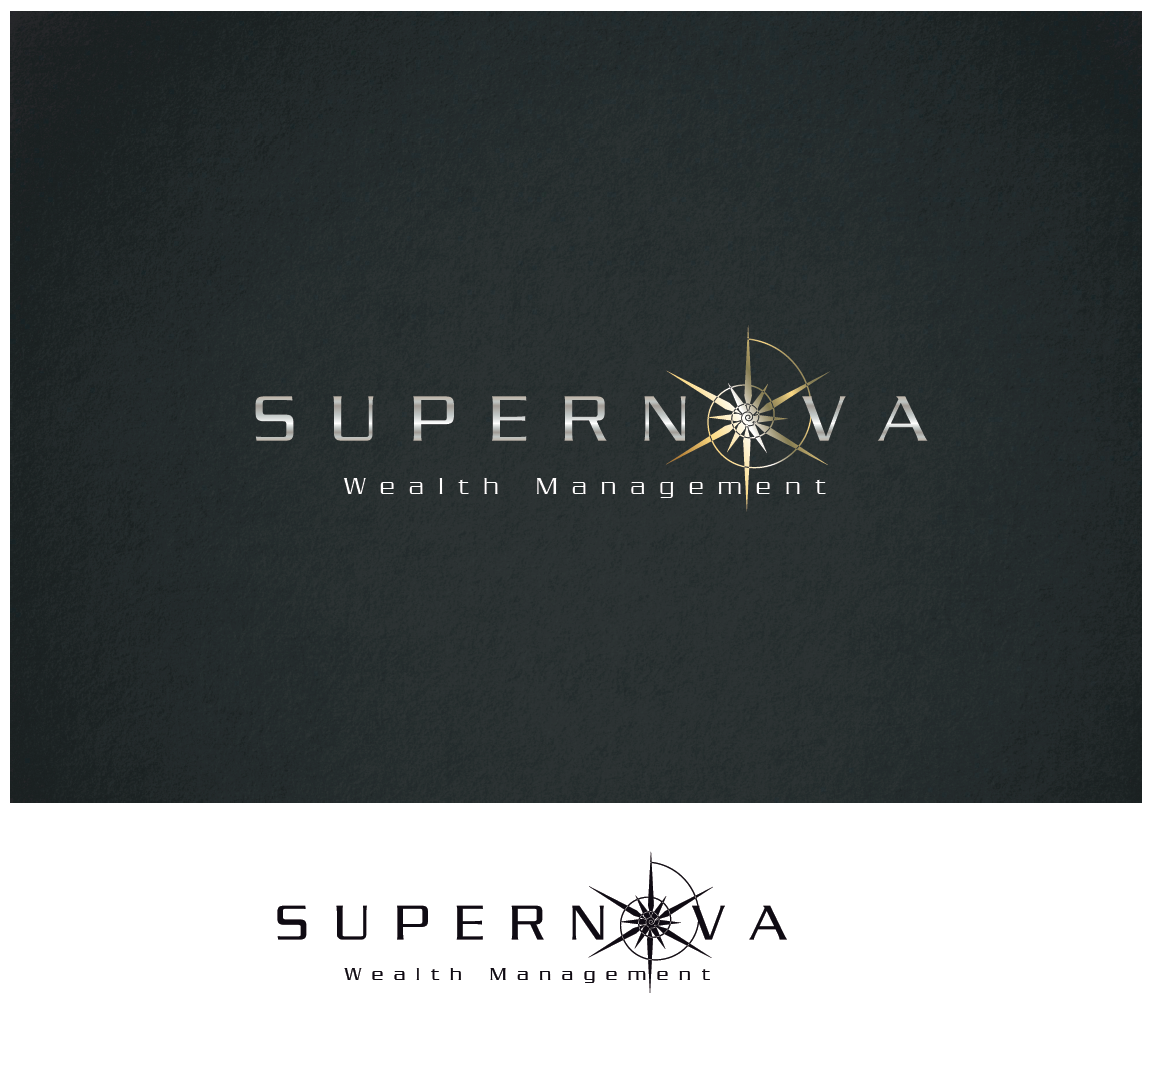 Creating a website and logo for Supernova Wealth Management, a financial services comapny